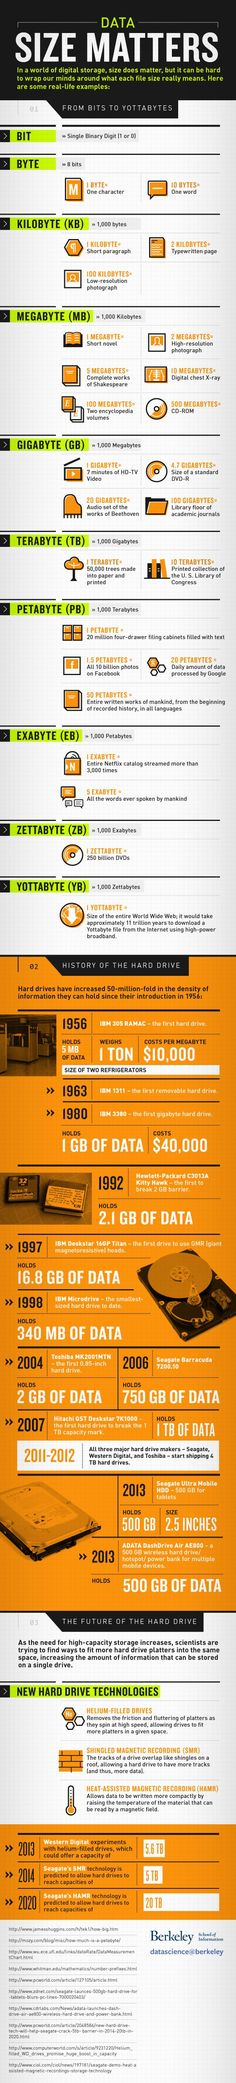 Big Data means a lot of data, but understanding the scope of a Yottabyte is difficult. This big data infographic shows the World Of Digital Storage Marketing Mail, Inbound Marketing, Marketing Digital, Media Marketing, Computer Technology, Computer Programming, Computer Science, Computer Literacy, Teaching Technology